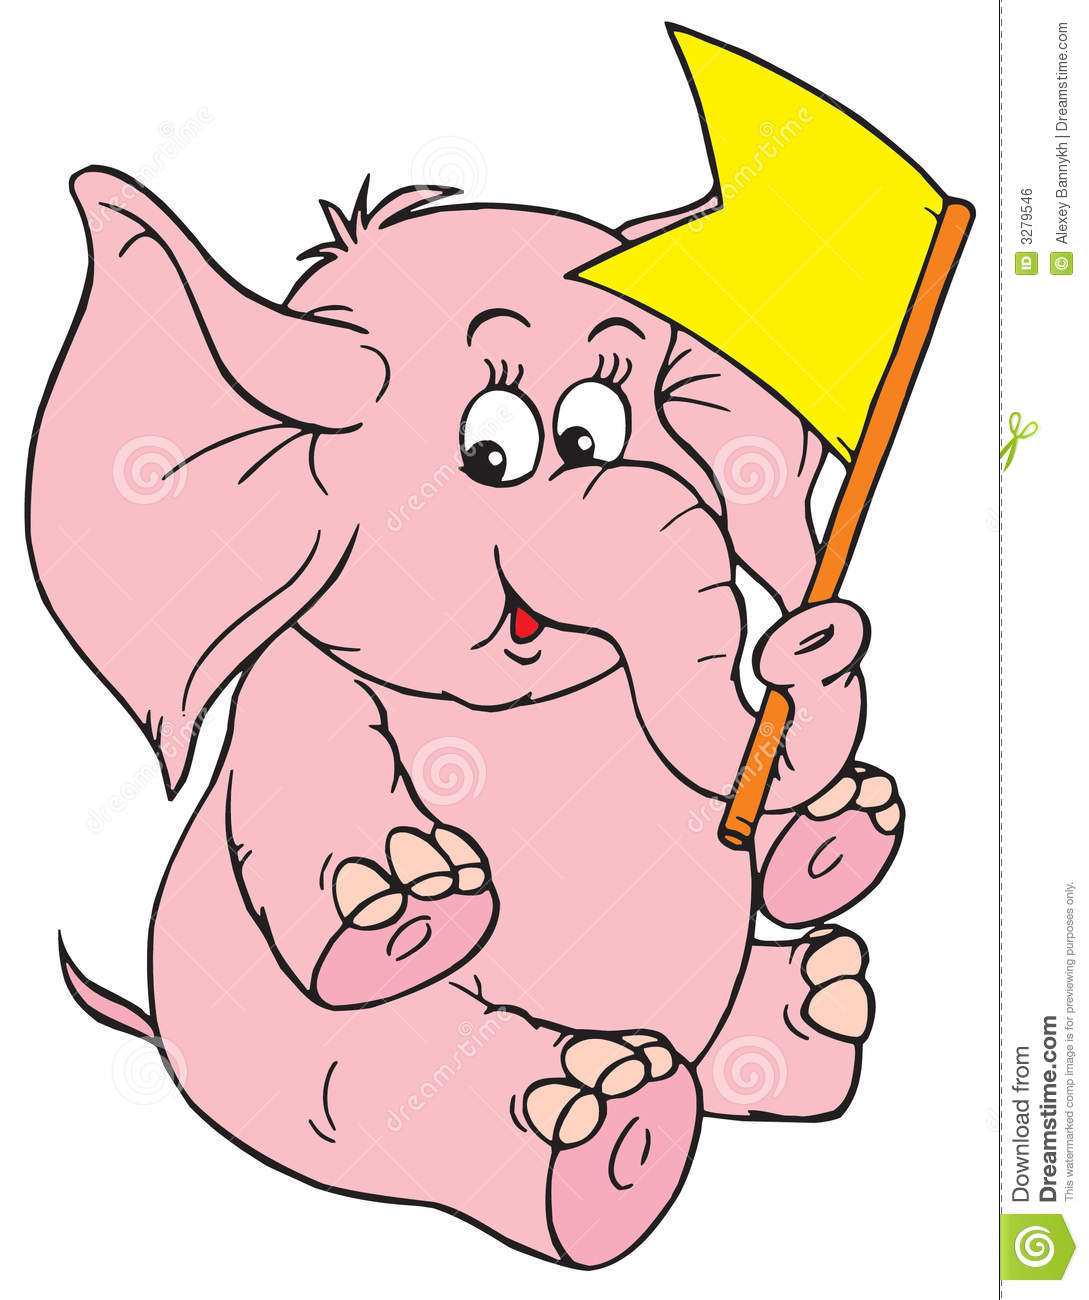 elephant clipart panda - photo #19